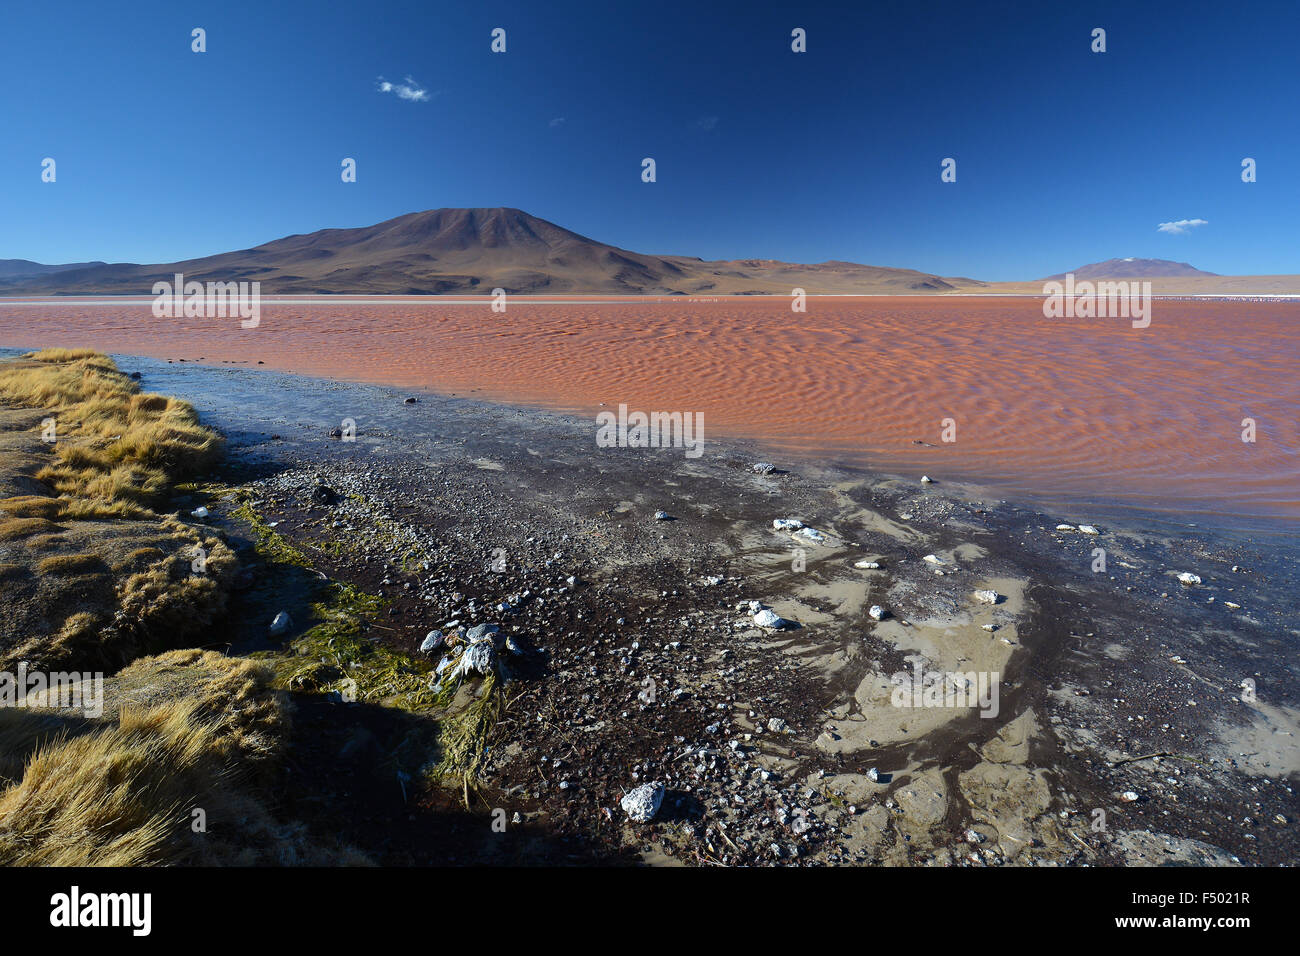 Laguna Colorada with red water caused by high algae content, in Uyuni, Lipez, Bolivia - Stock Image